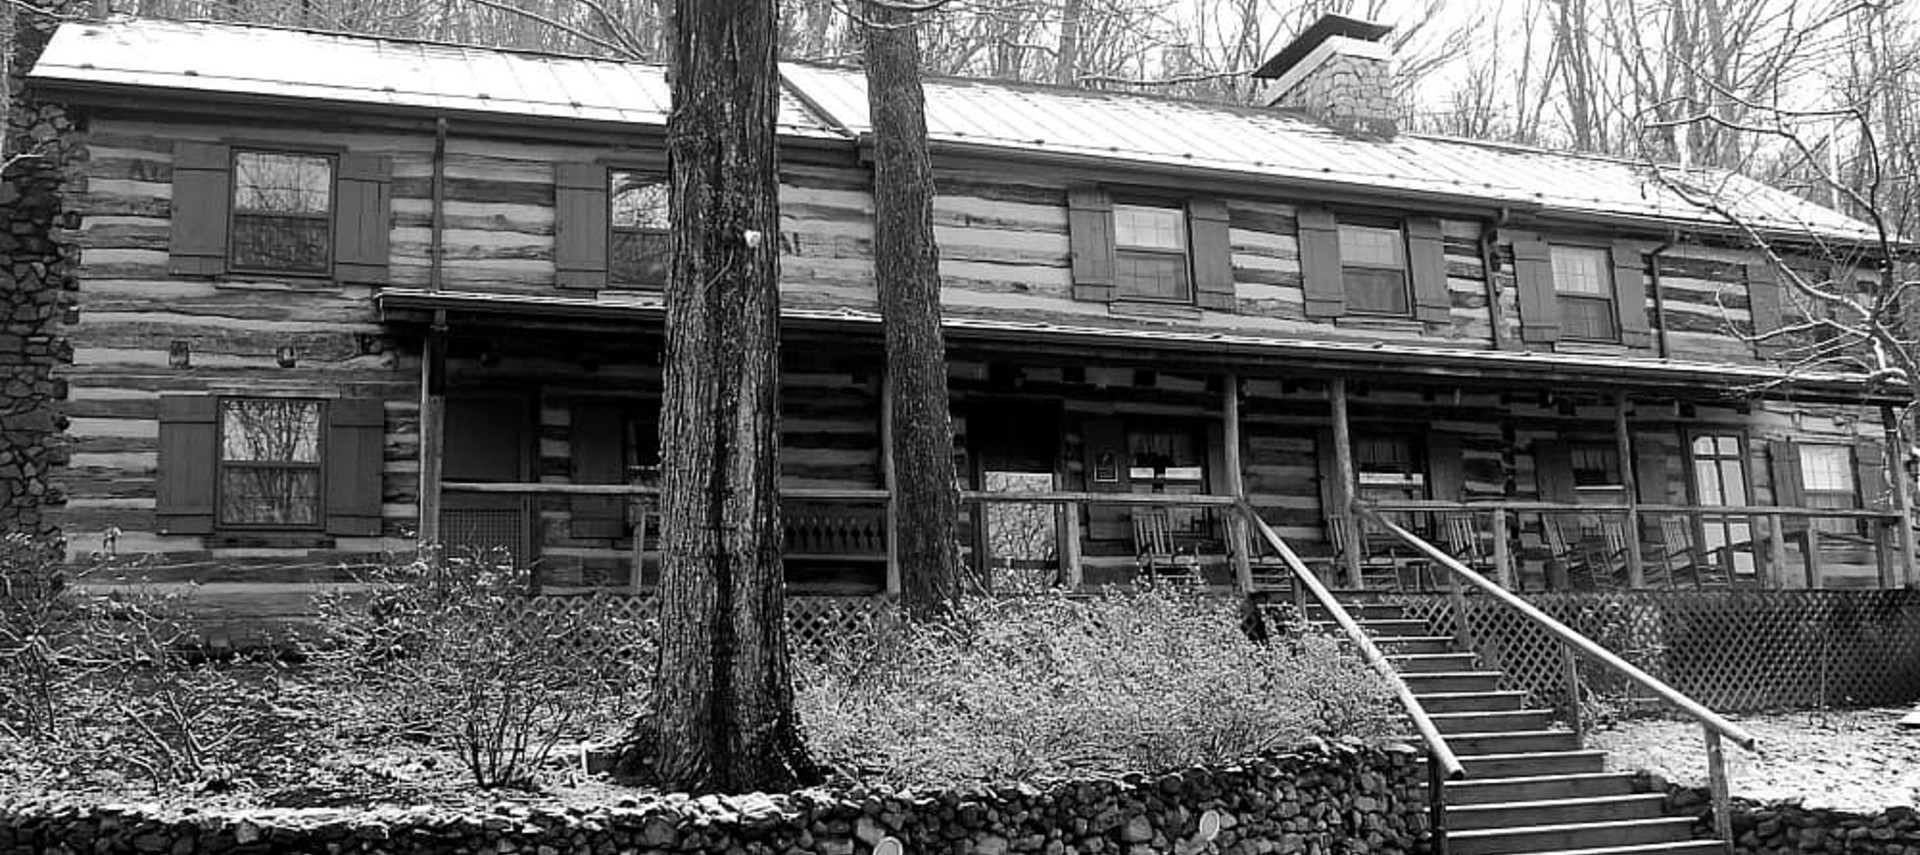 Outside of a large log cabin with lots of windows and a large porch in black and white format.